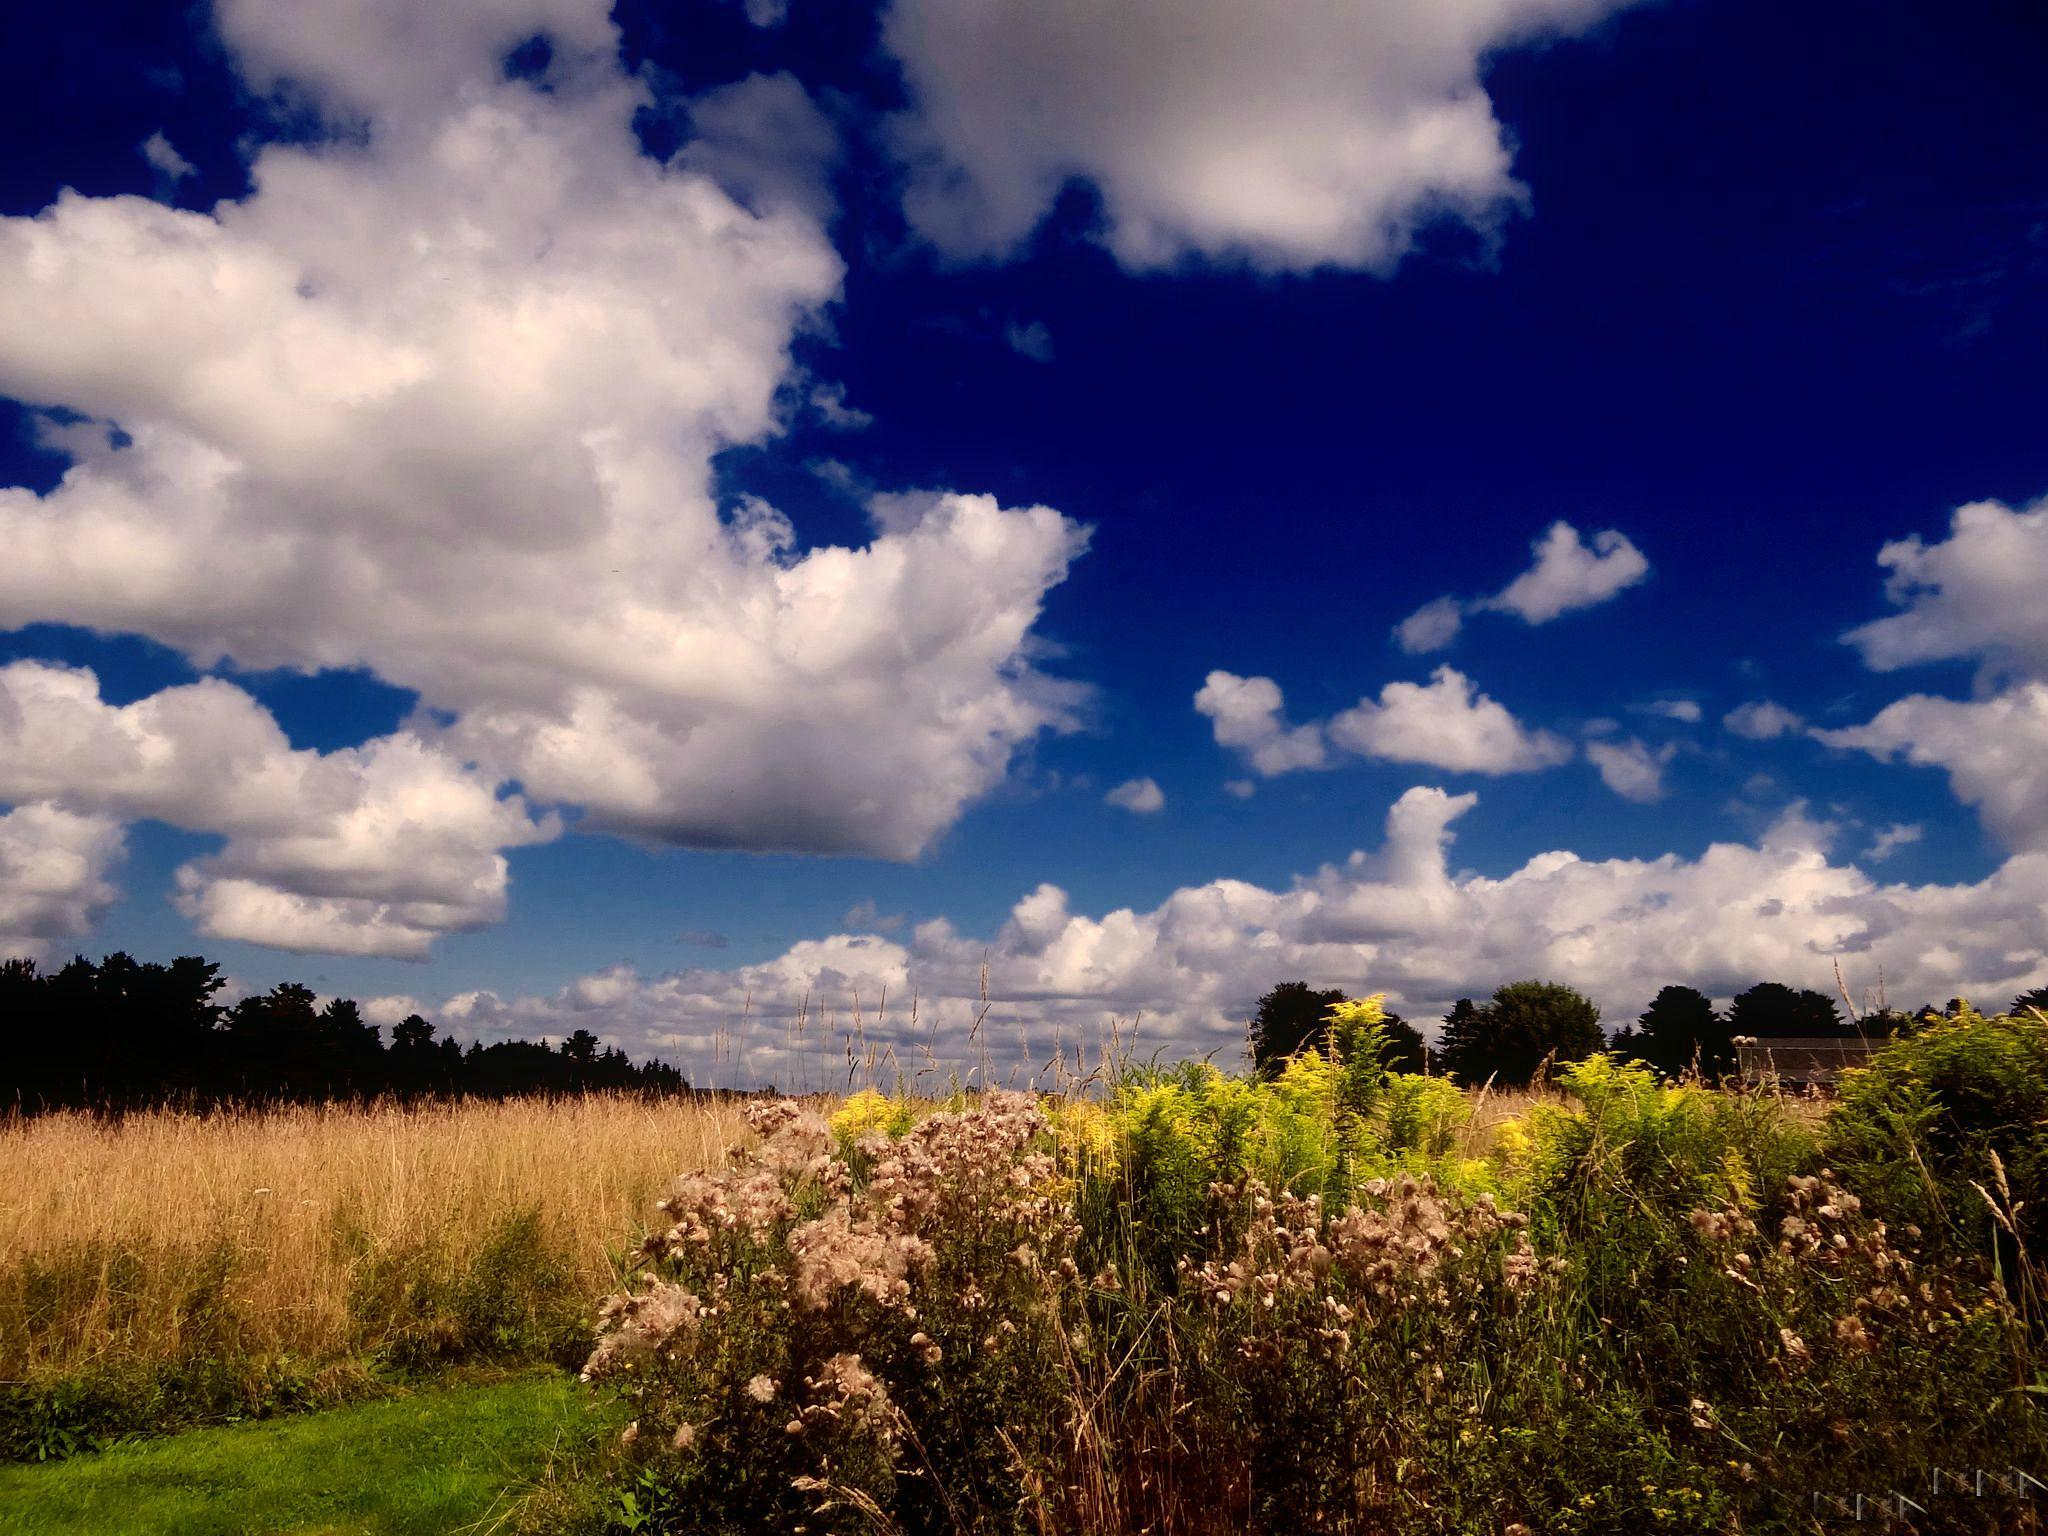 Puffy Clouds and Fields by paulette.king